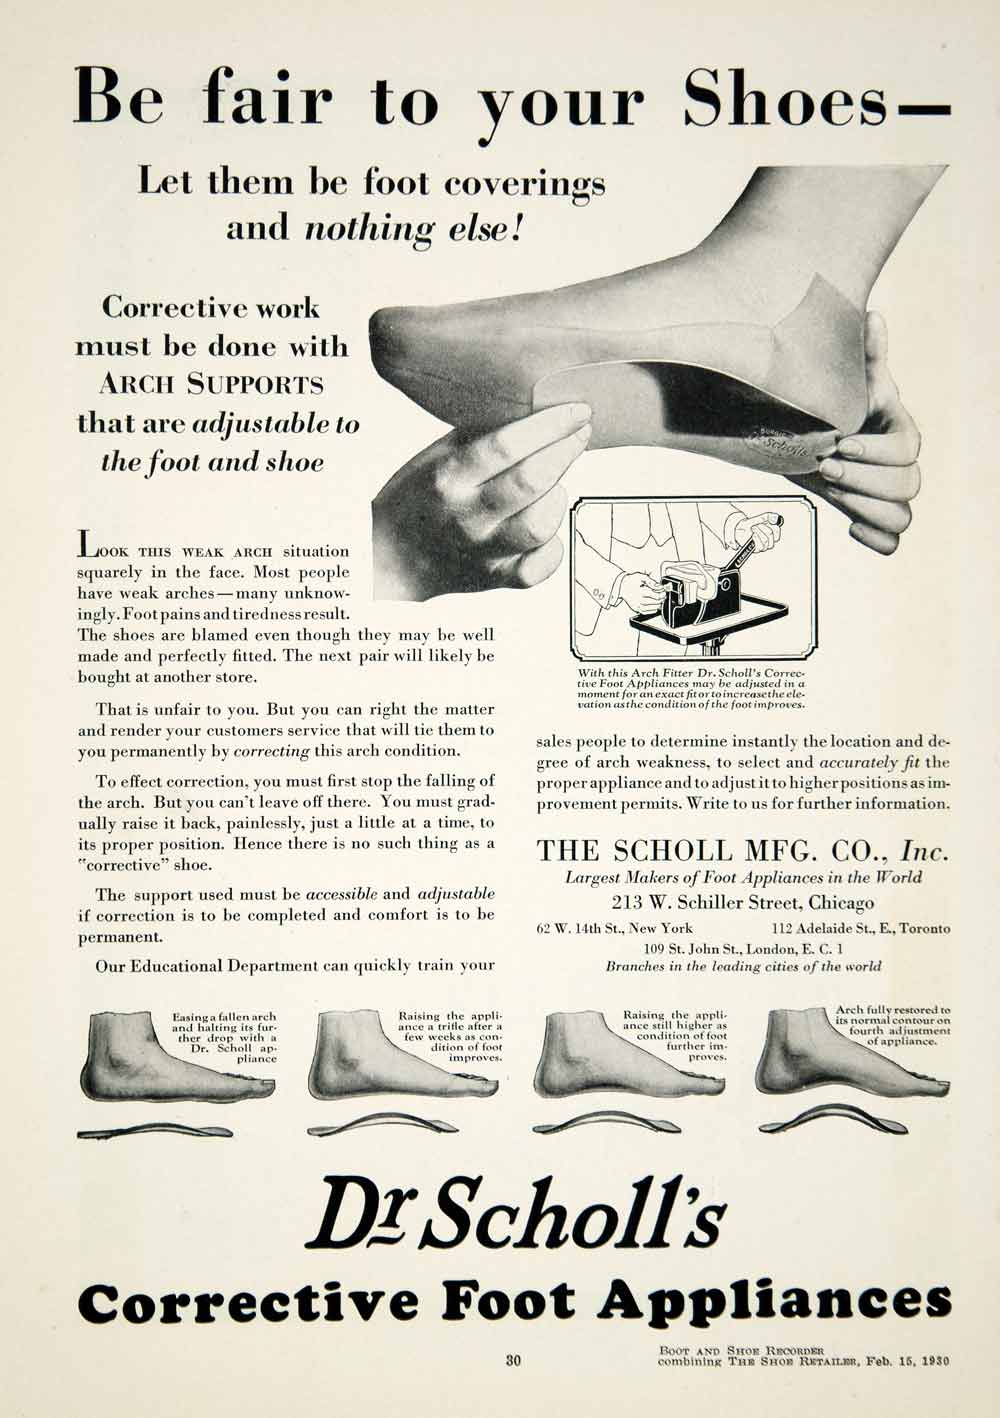 1930 Ad Dr. Scholl's Corrective Foot Appliances Arch Support Medical YBSR1